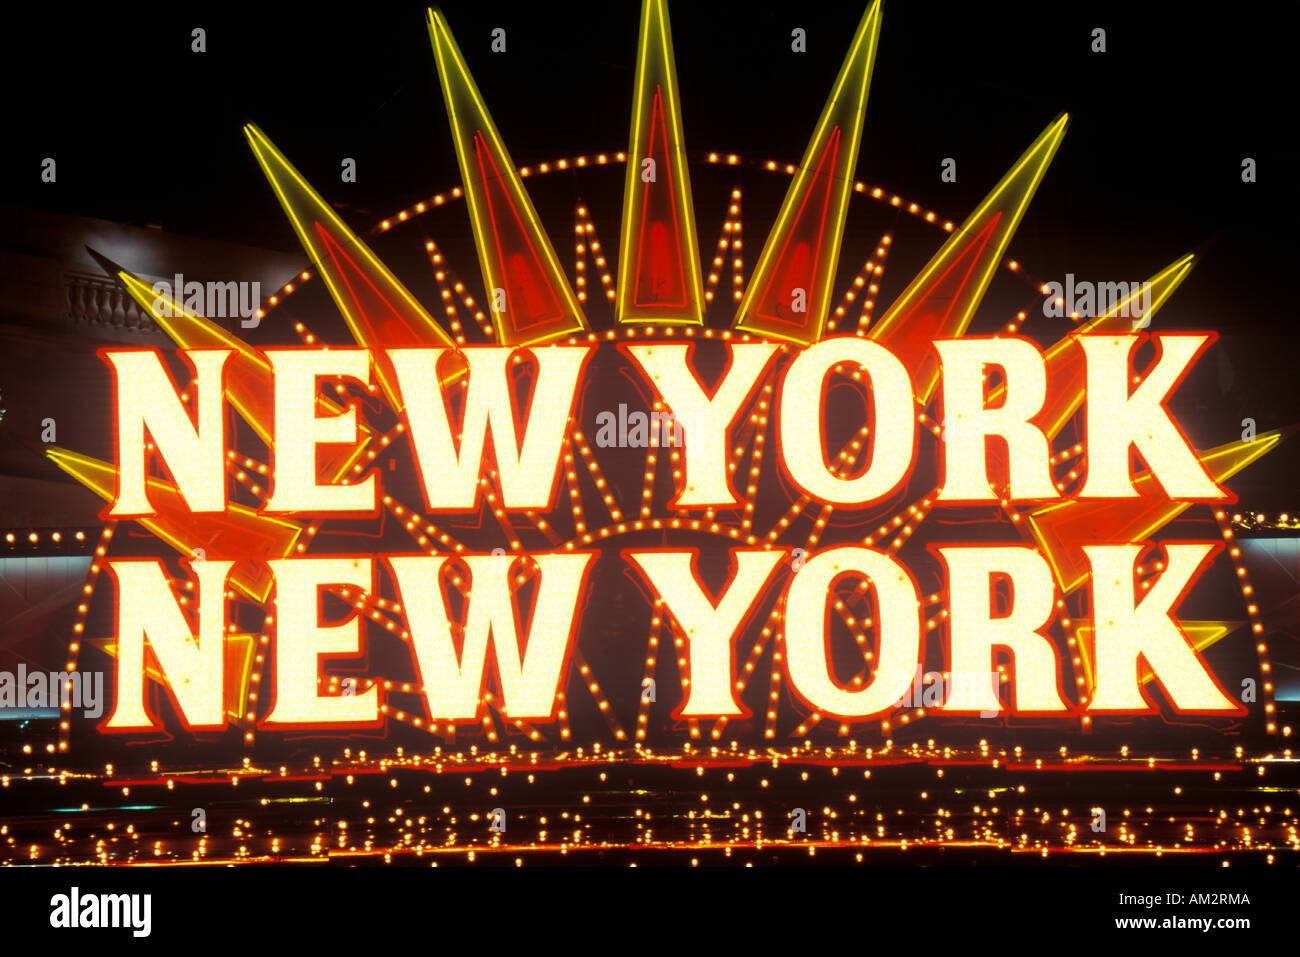 New york new york neon sign in las vegas nevada stock for What to do in new york new york